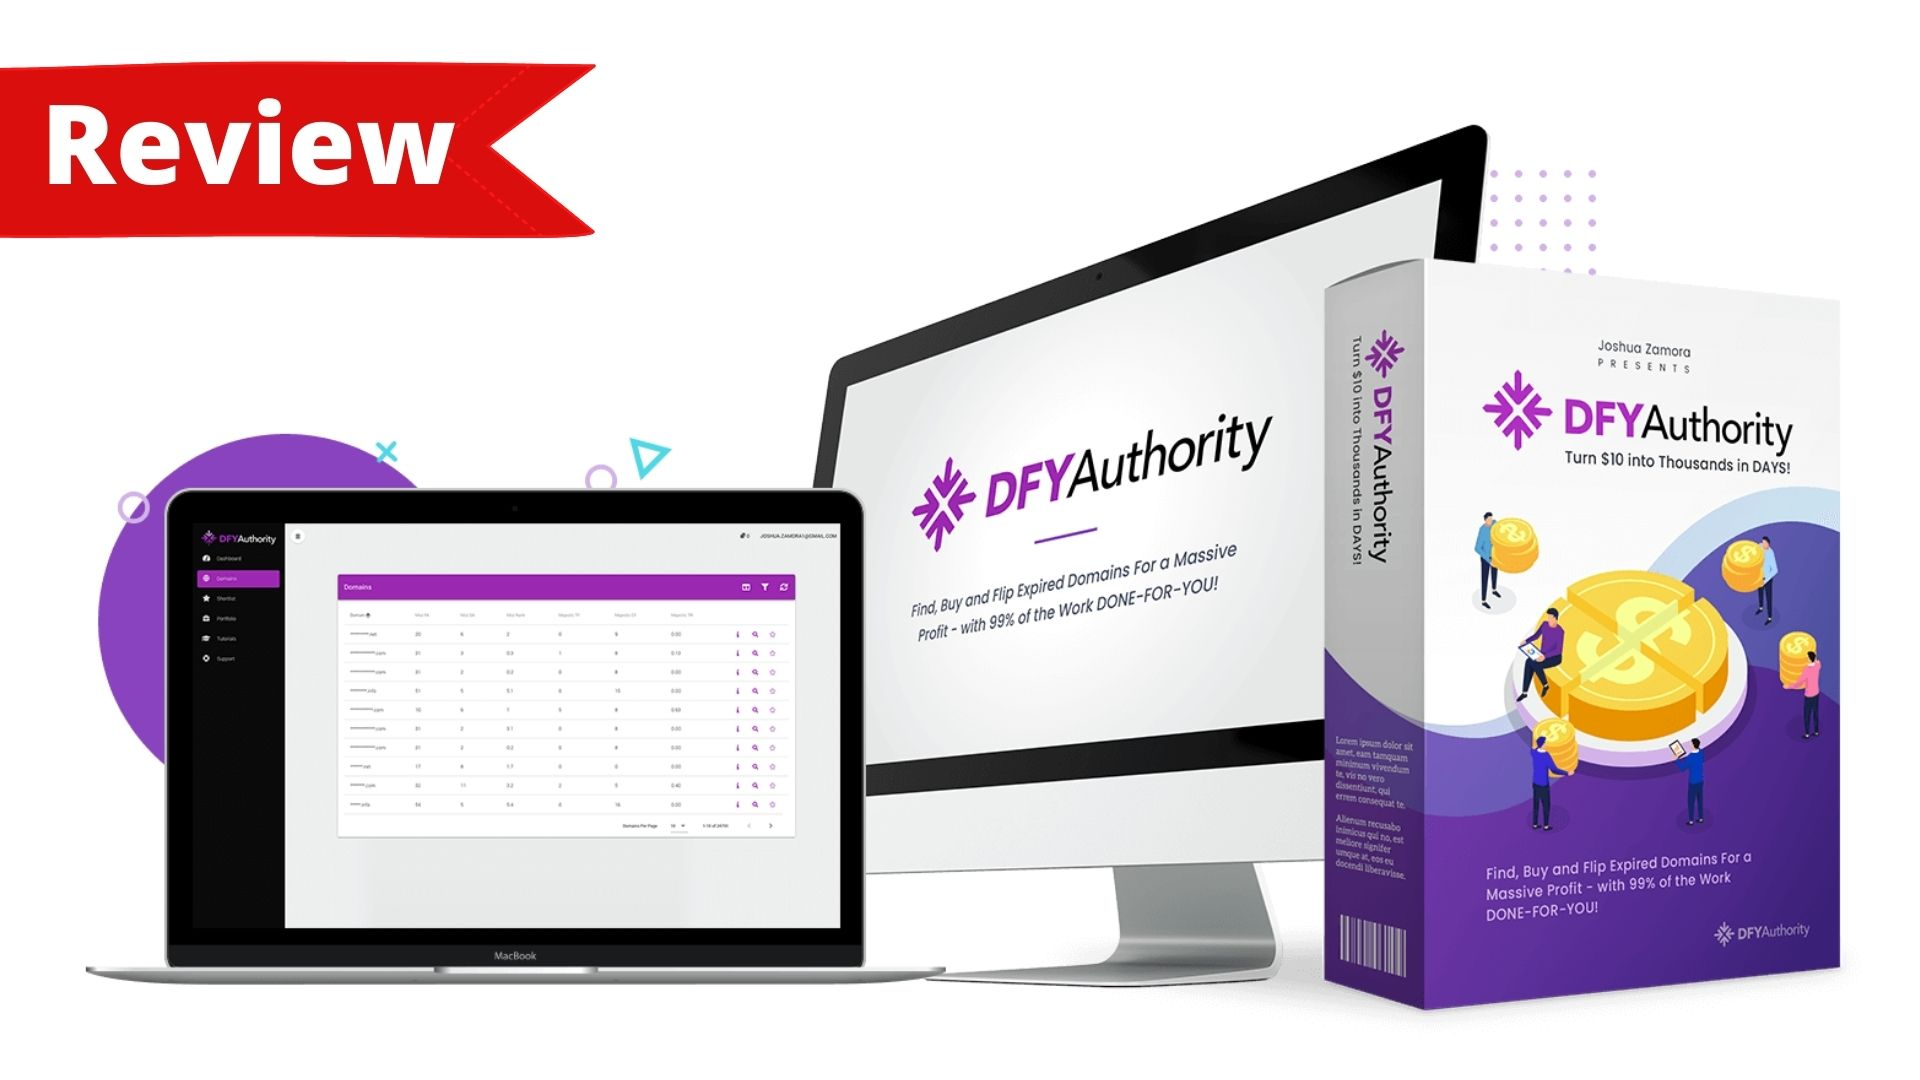 DFY Authority Review: Another Scam Product or Legit?